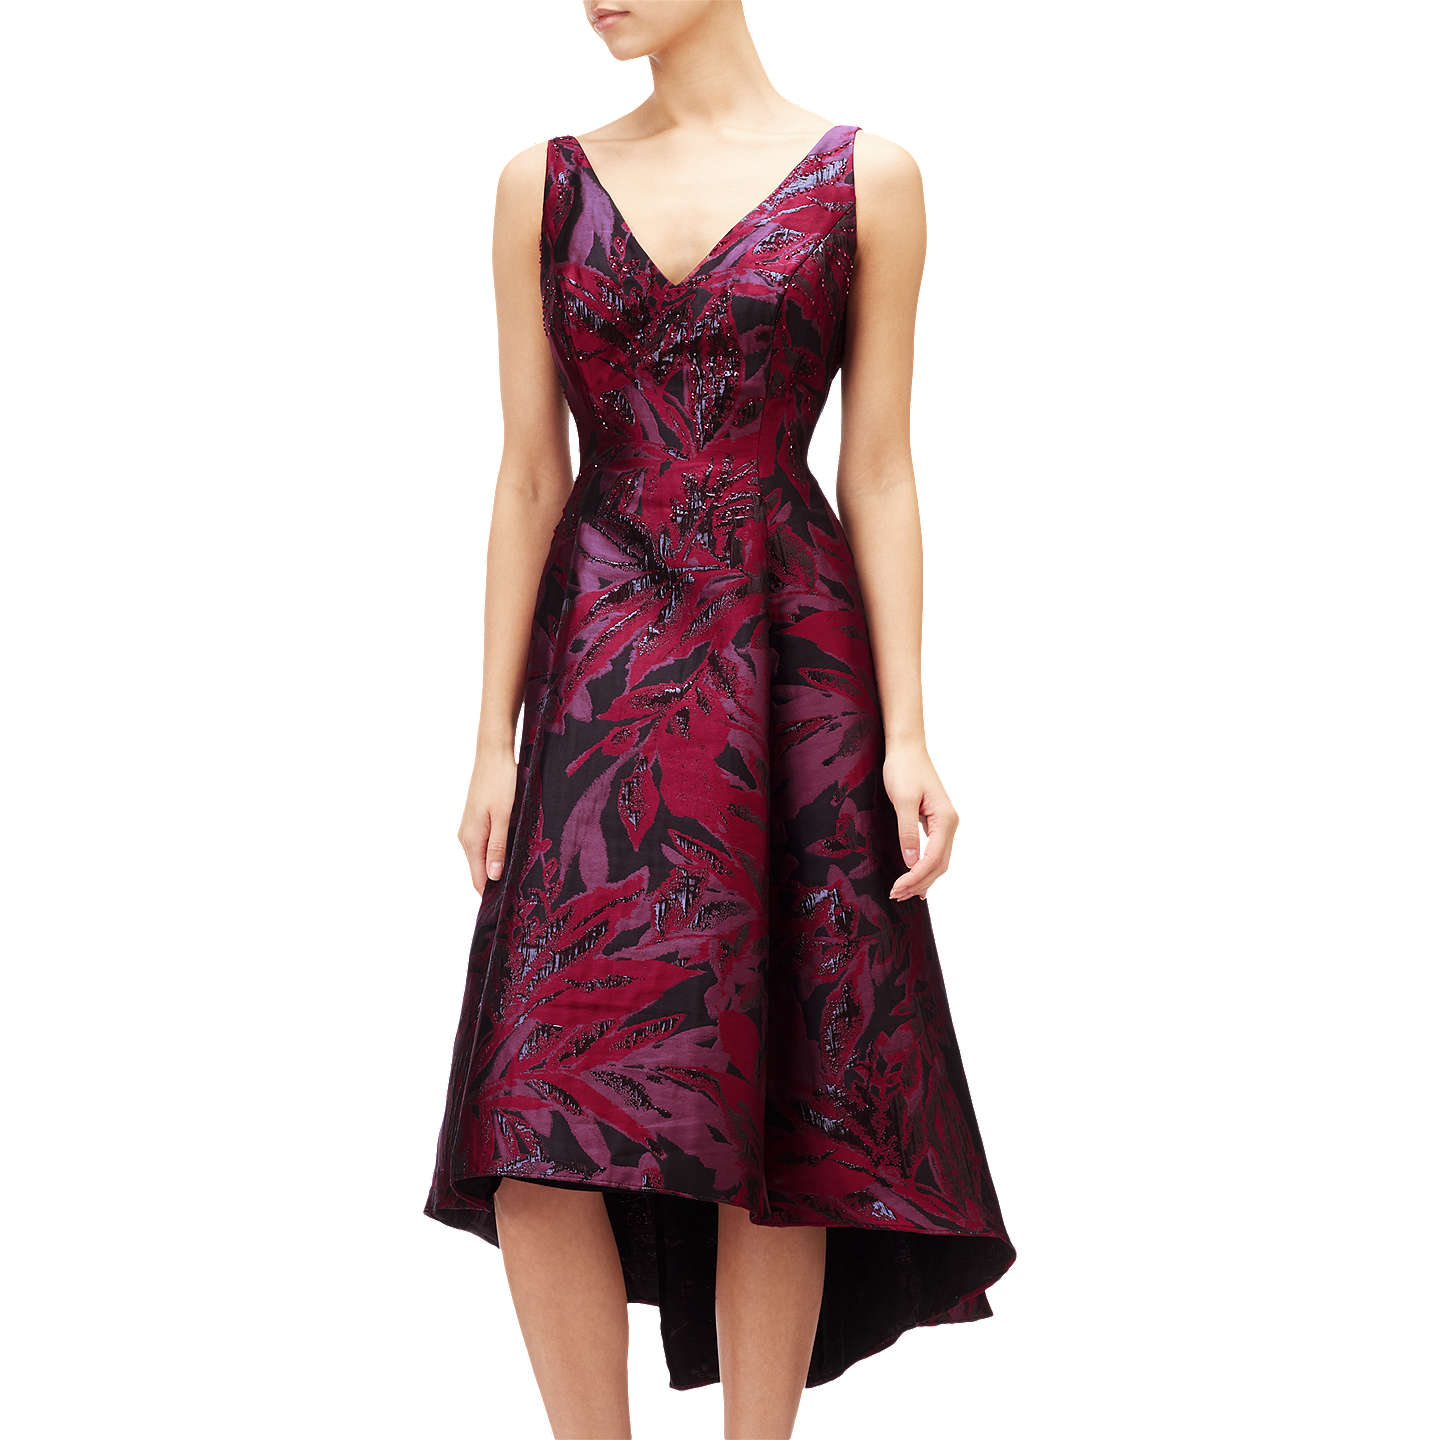 Adrianna Papell Floral Jacquard Embellished Dress, Wine Berry/Multi ...